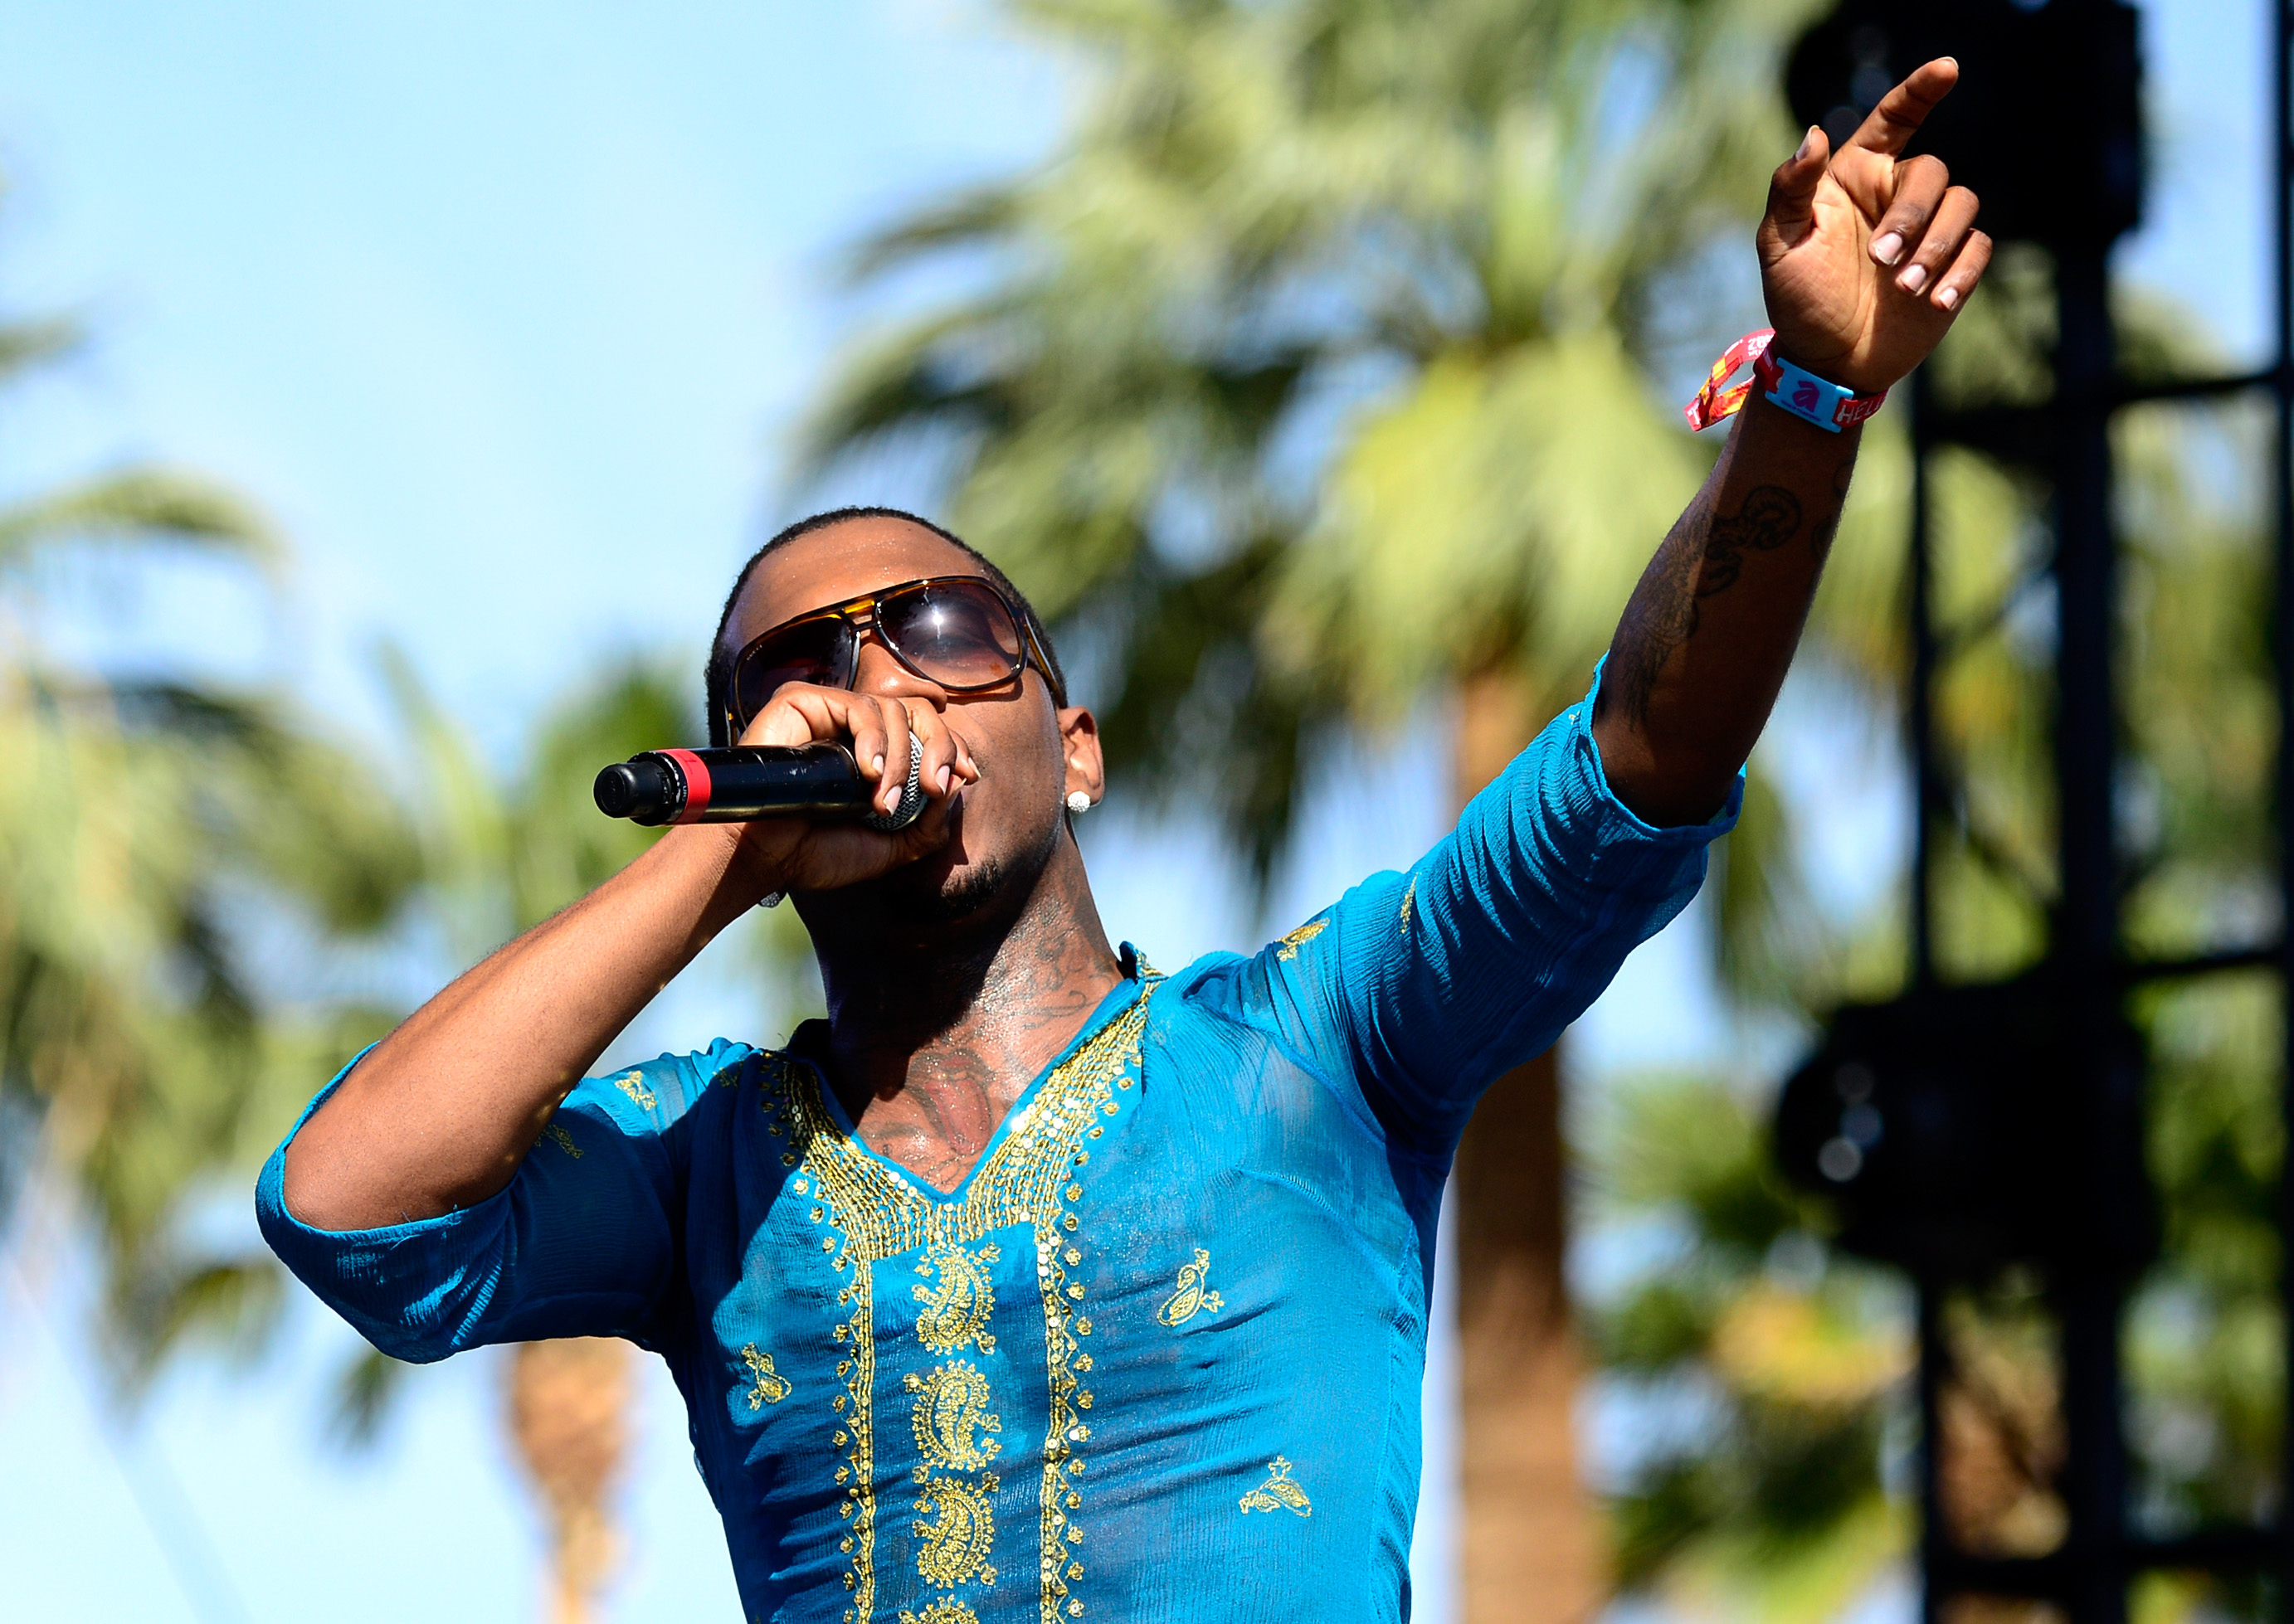 Lil B Just Cursed LeBron James, so the NBA Finals Are Over